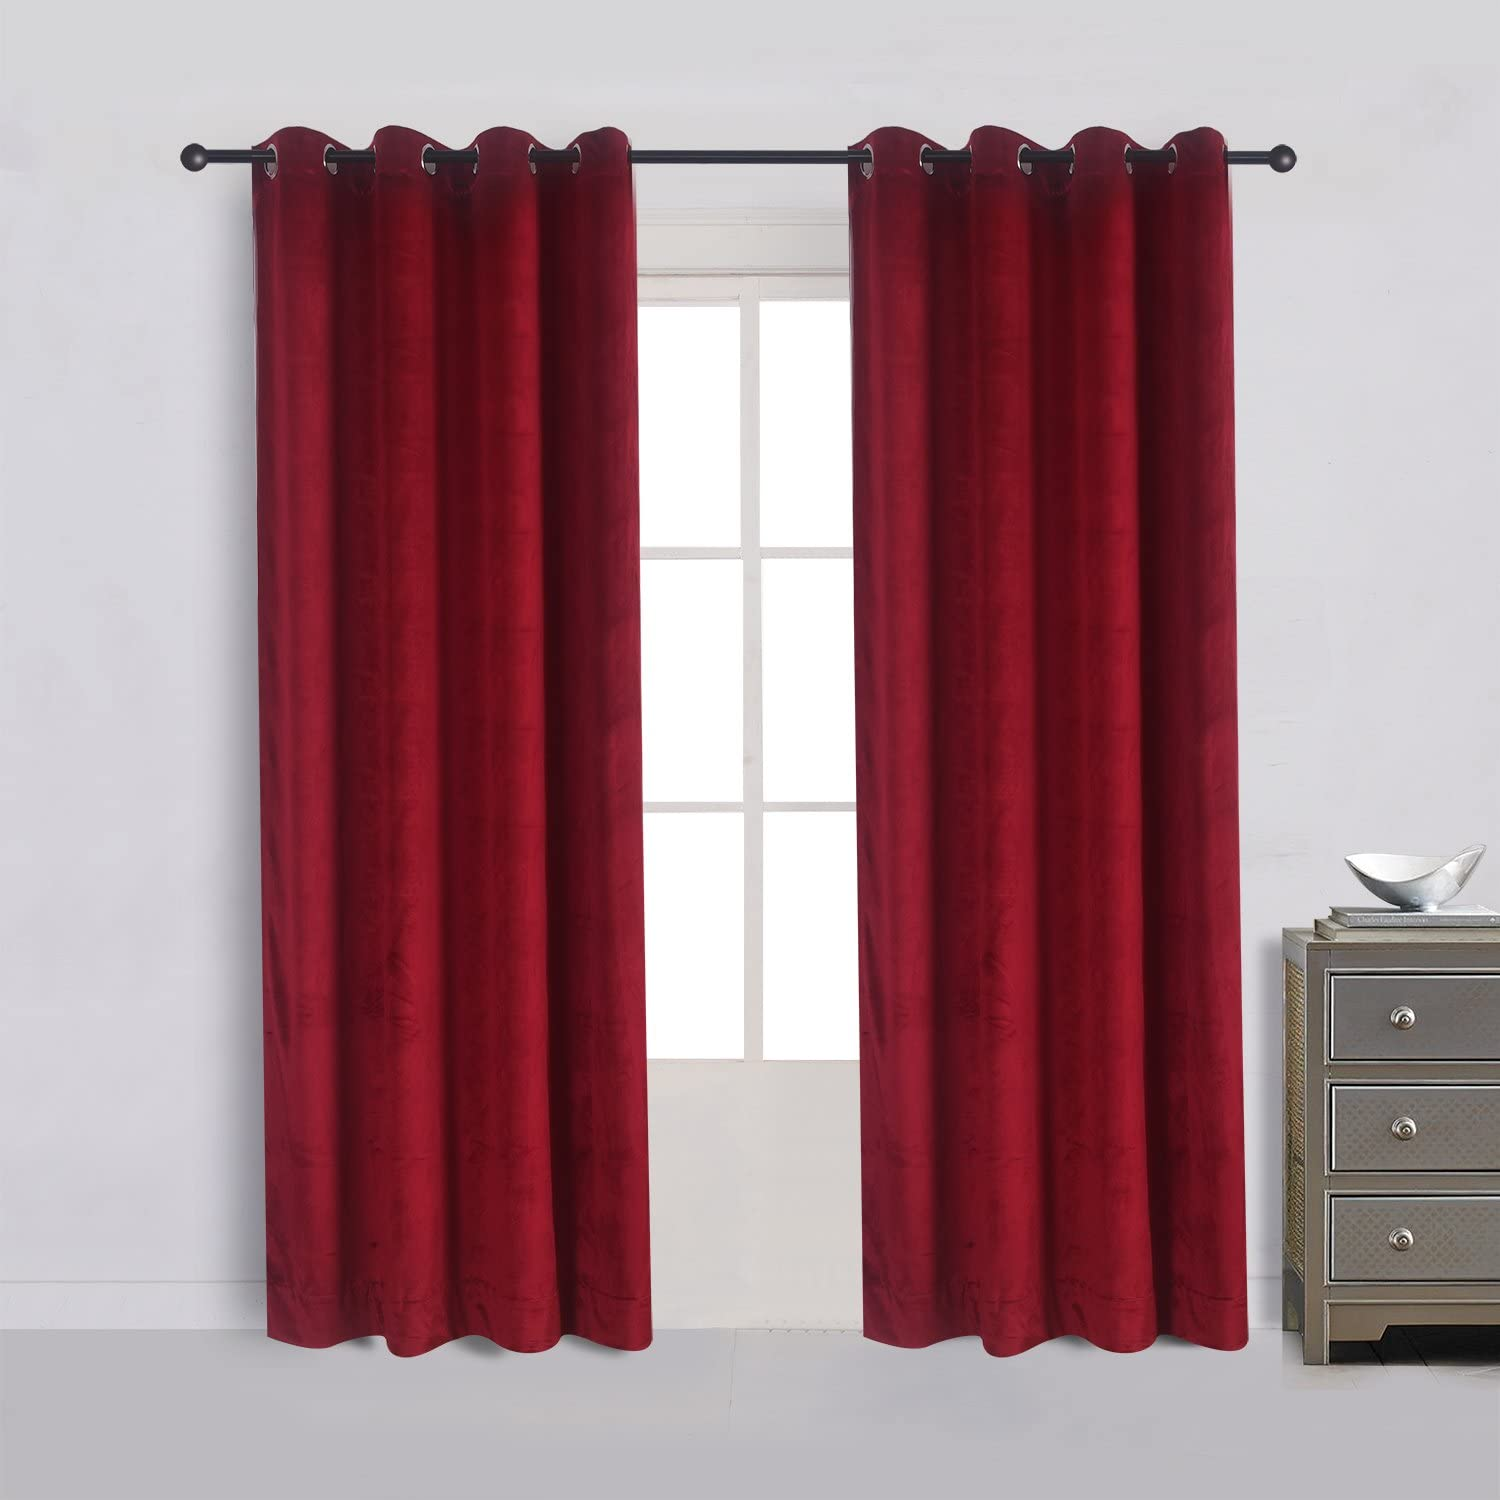 Cherry Home Set of 2 Classic Blackout Velvet Curtains Panels Home Theater Grommet Drapes Eyelet 52Wx96L-inch Red(2 Panels) Theater| Bedroom| Living Room| Hotel